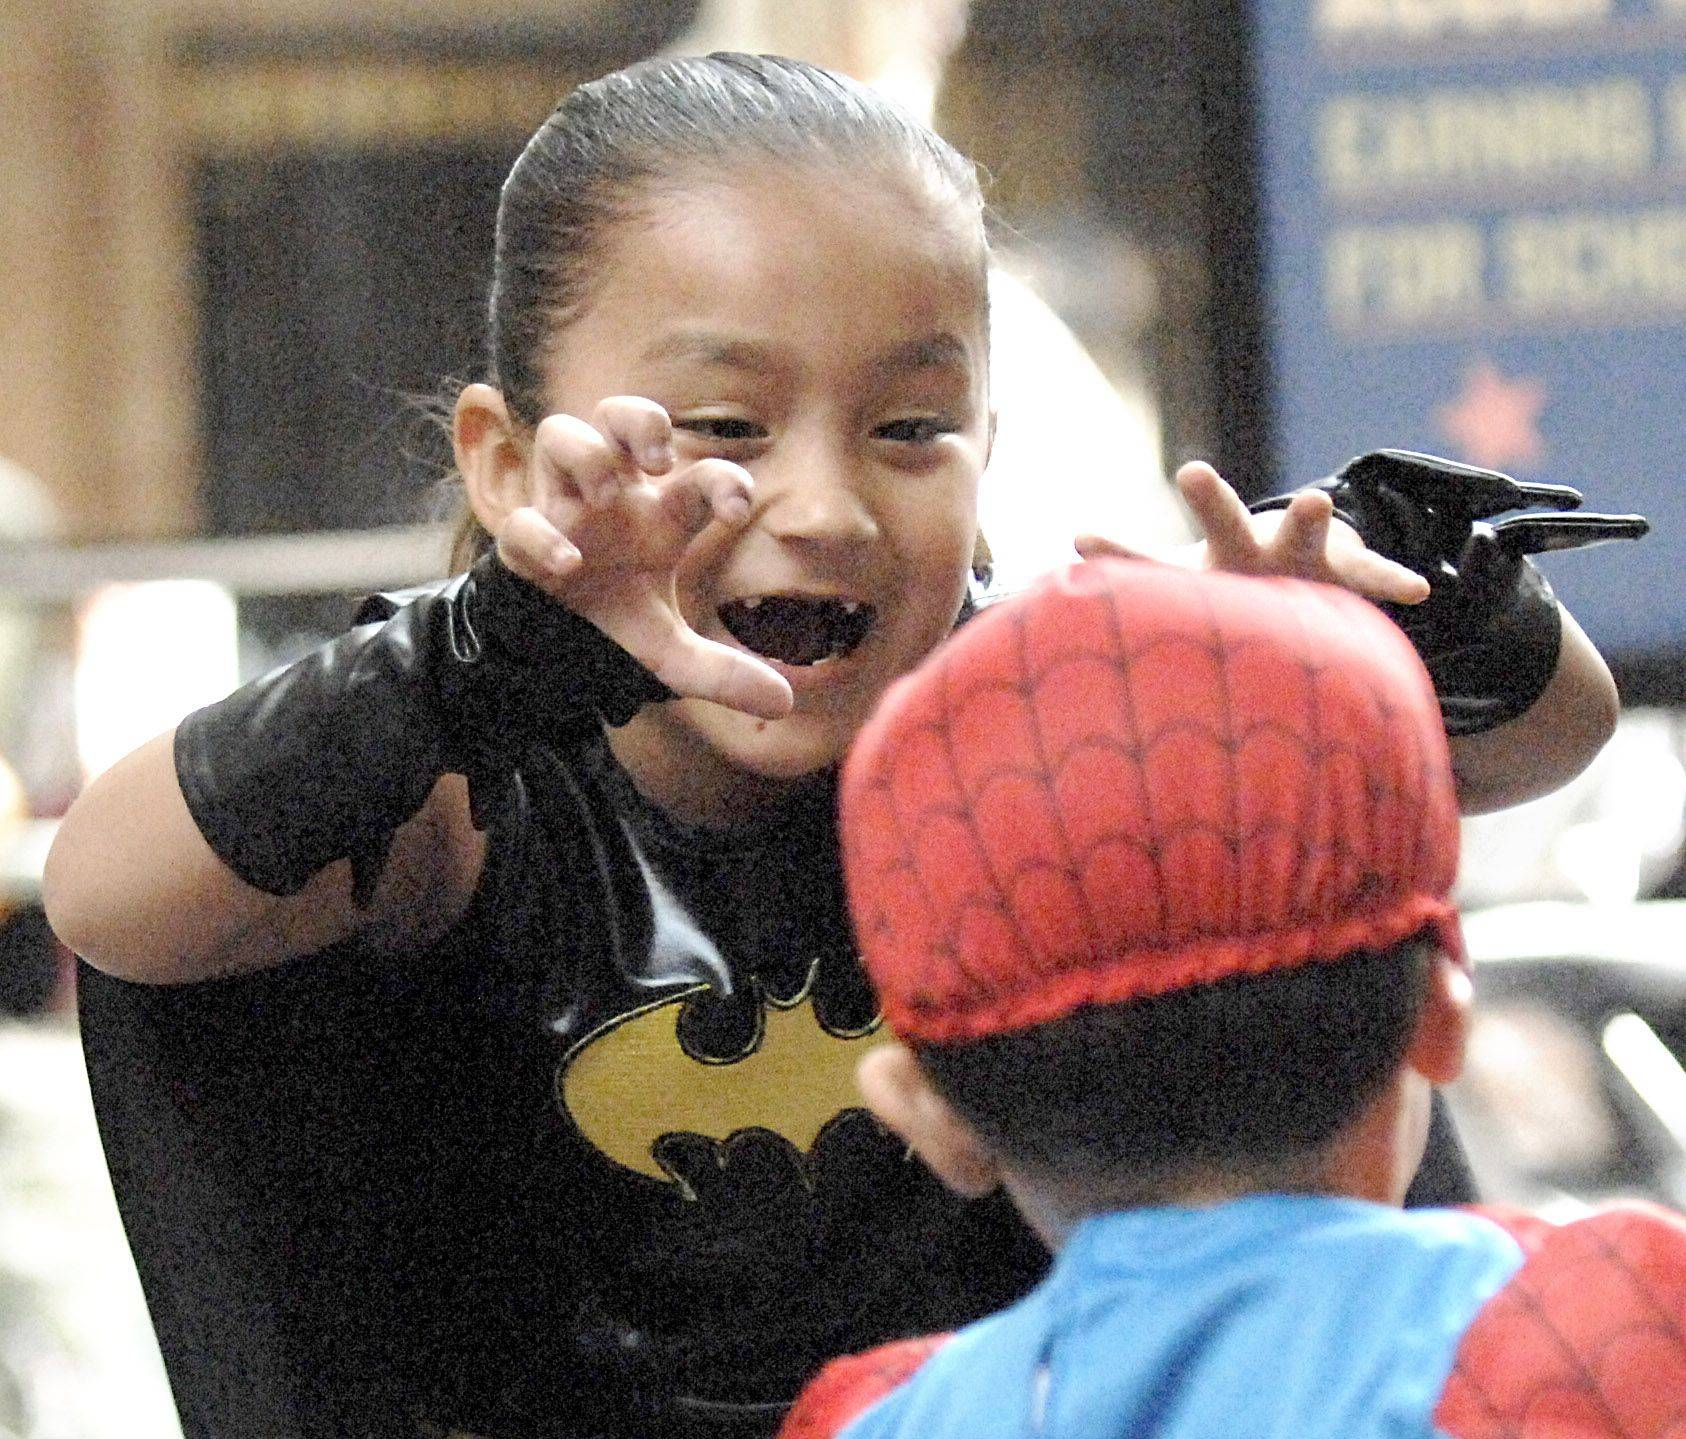 Hailey Hernandez, 4, attempts to spook her cousin David Garcia, 2, while waiting for the costume contest at Spring Hill Mall's Fall Family Festival in West Dundee Saturday. Close to 200 children showed to enter the costume contest. There were 5 top prizes for the best costumes in the categories of funniest, cutest, most creative, look-alike and scariest.